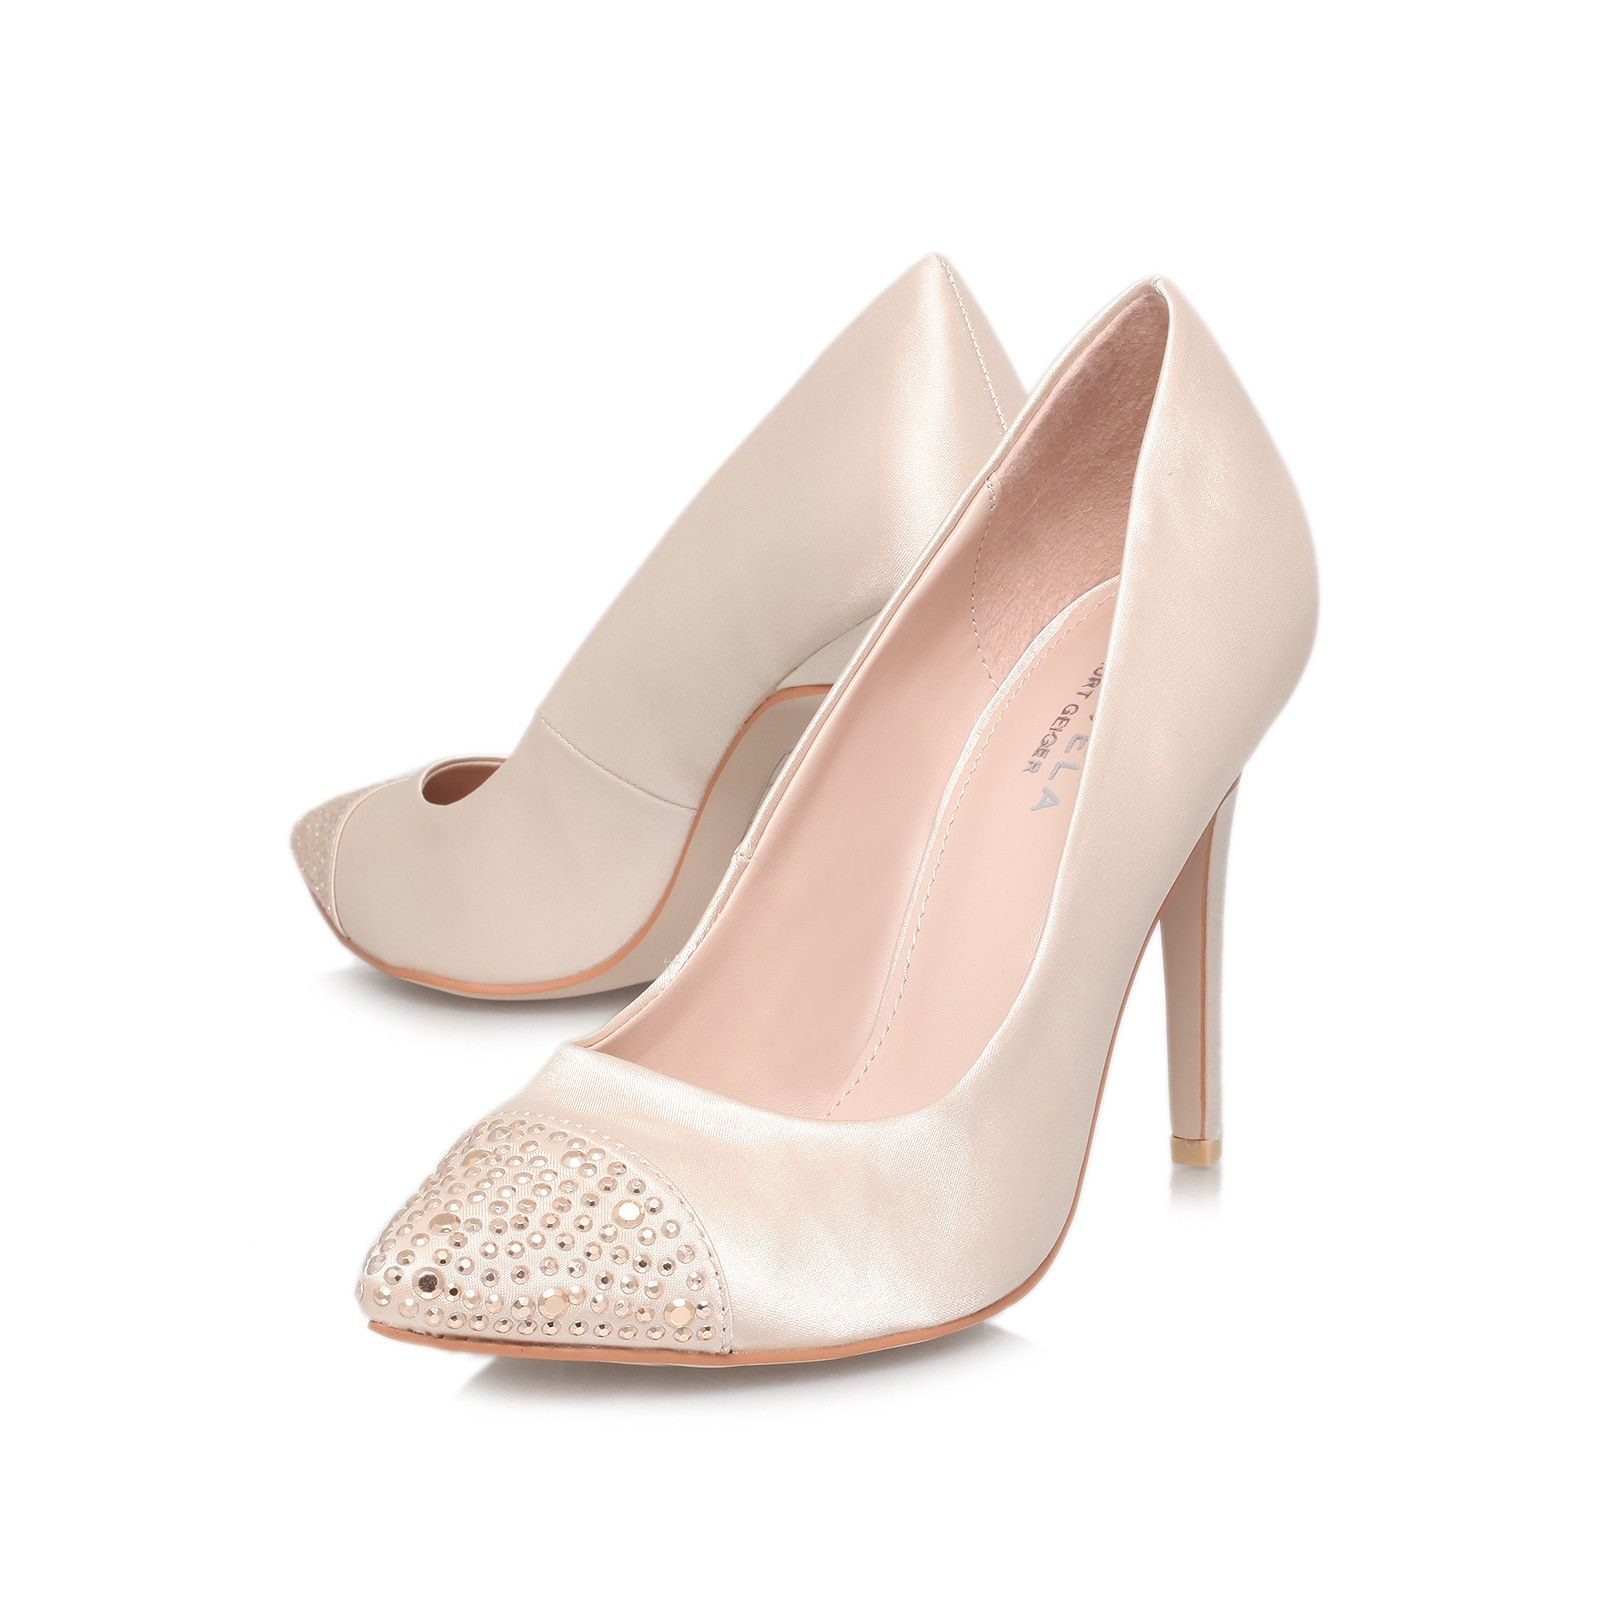 Lacey Shoe By Carvela Kurt Geiger